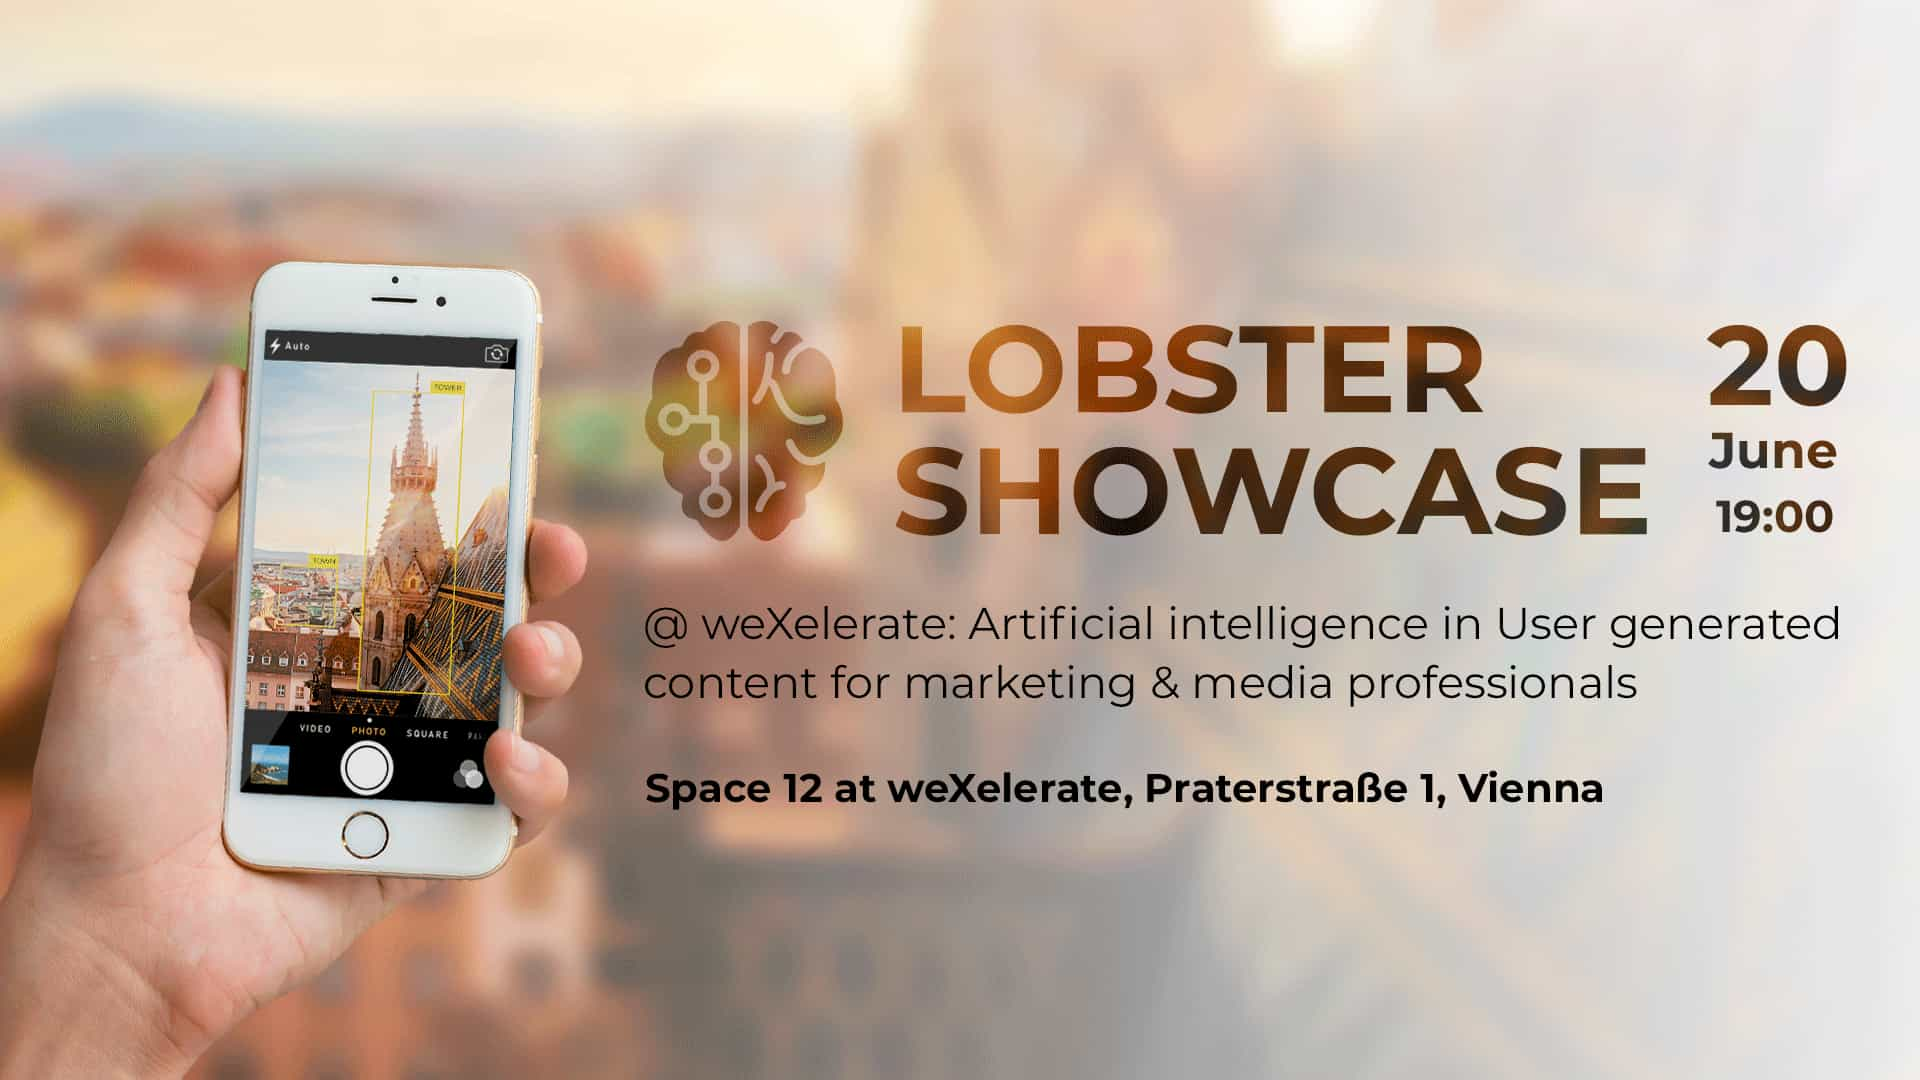 Lobster Showcase at WeXelerate: AI in UGC for marketing